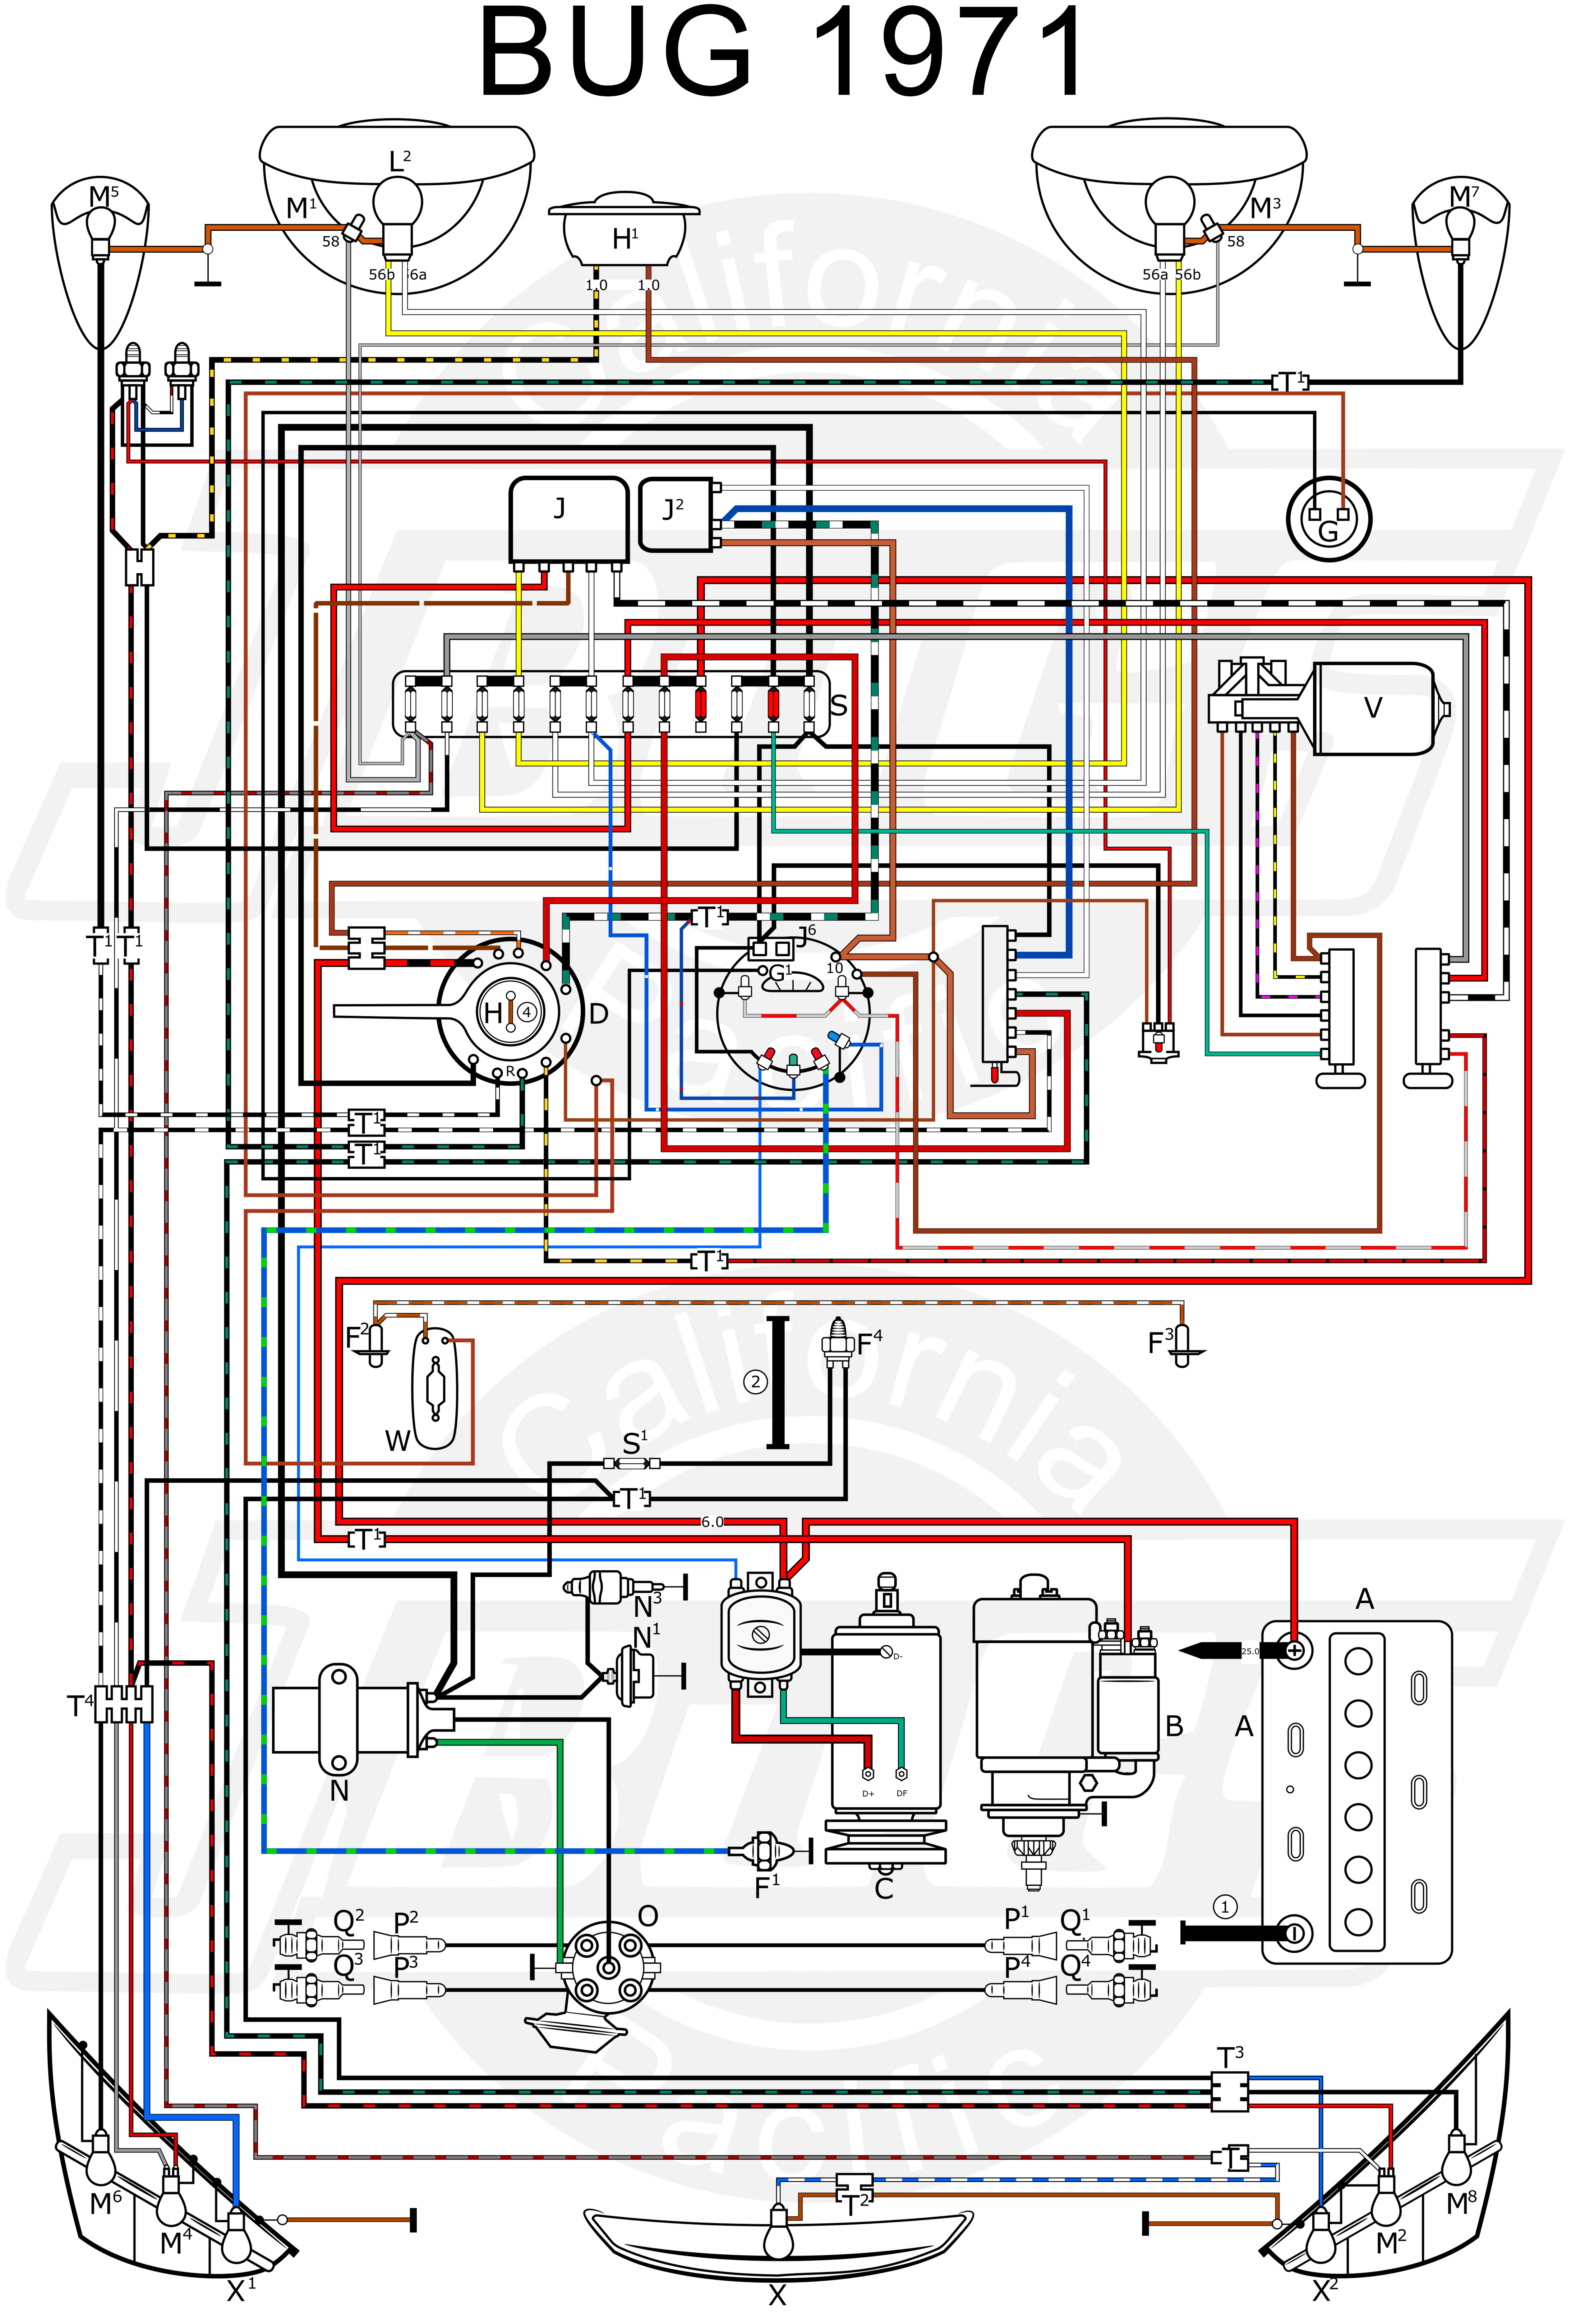 VW Bug 1971 Wiring Diagram vw tech article 1971 wiring diagram VW Bus Ignition Coil at cos-gaming.co